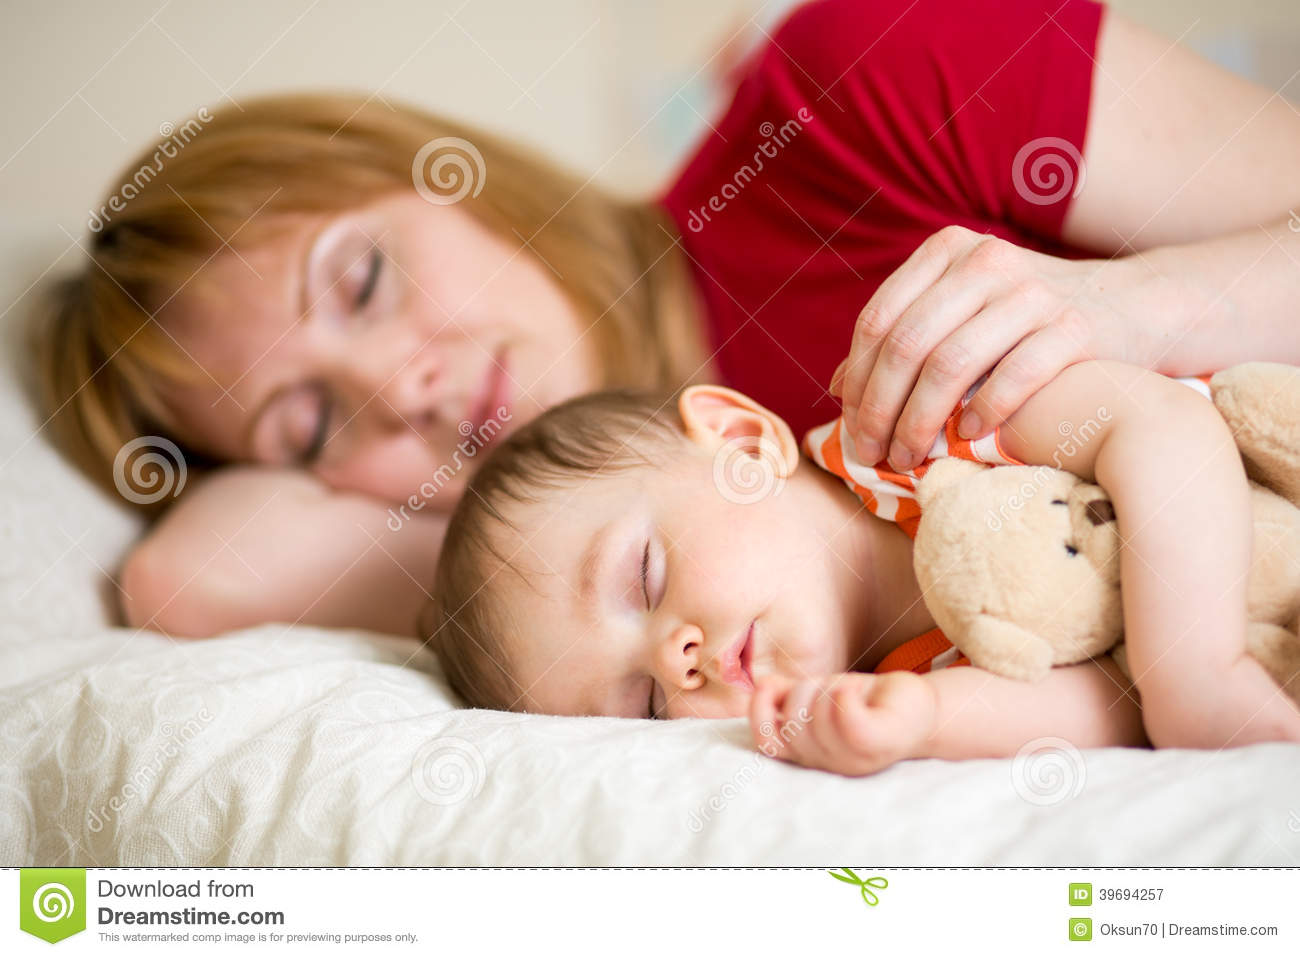 mom and baby sleeping together relationship